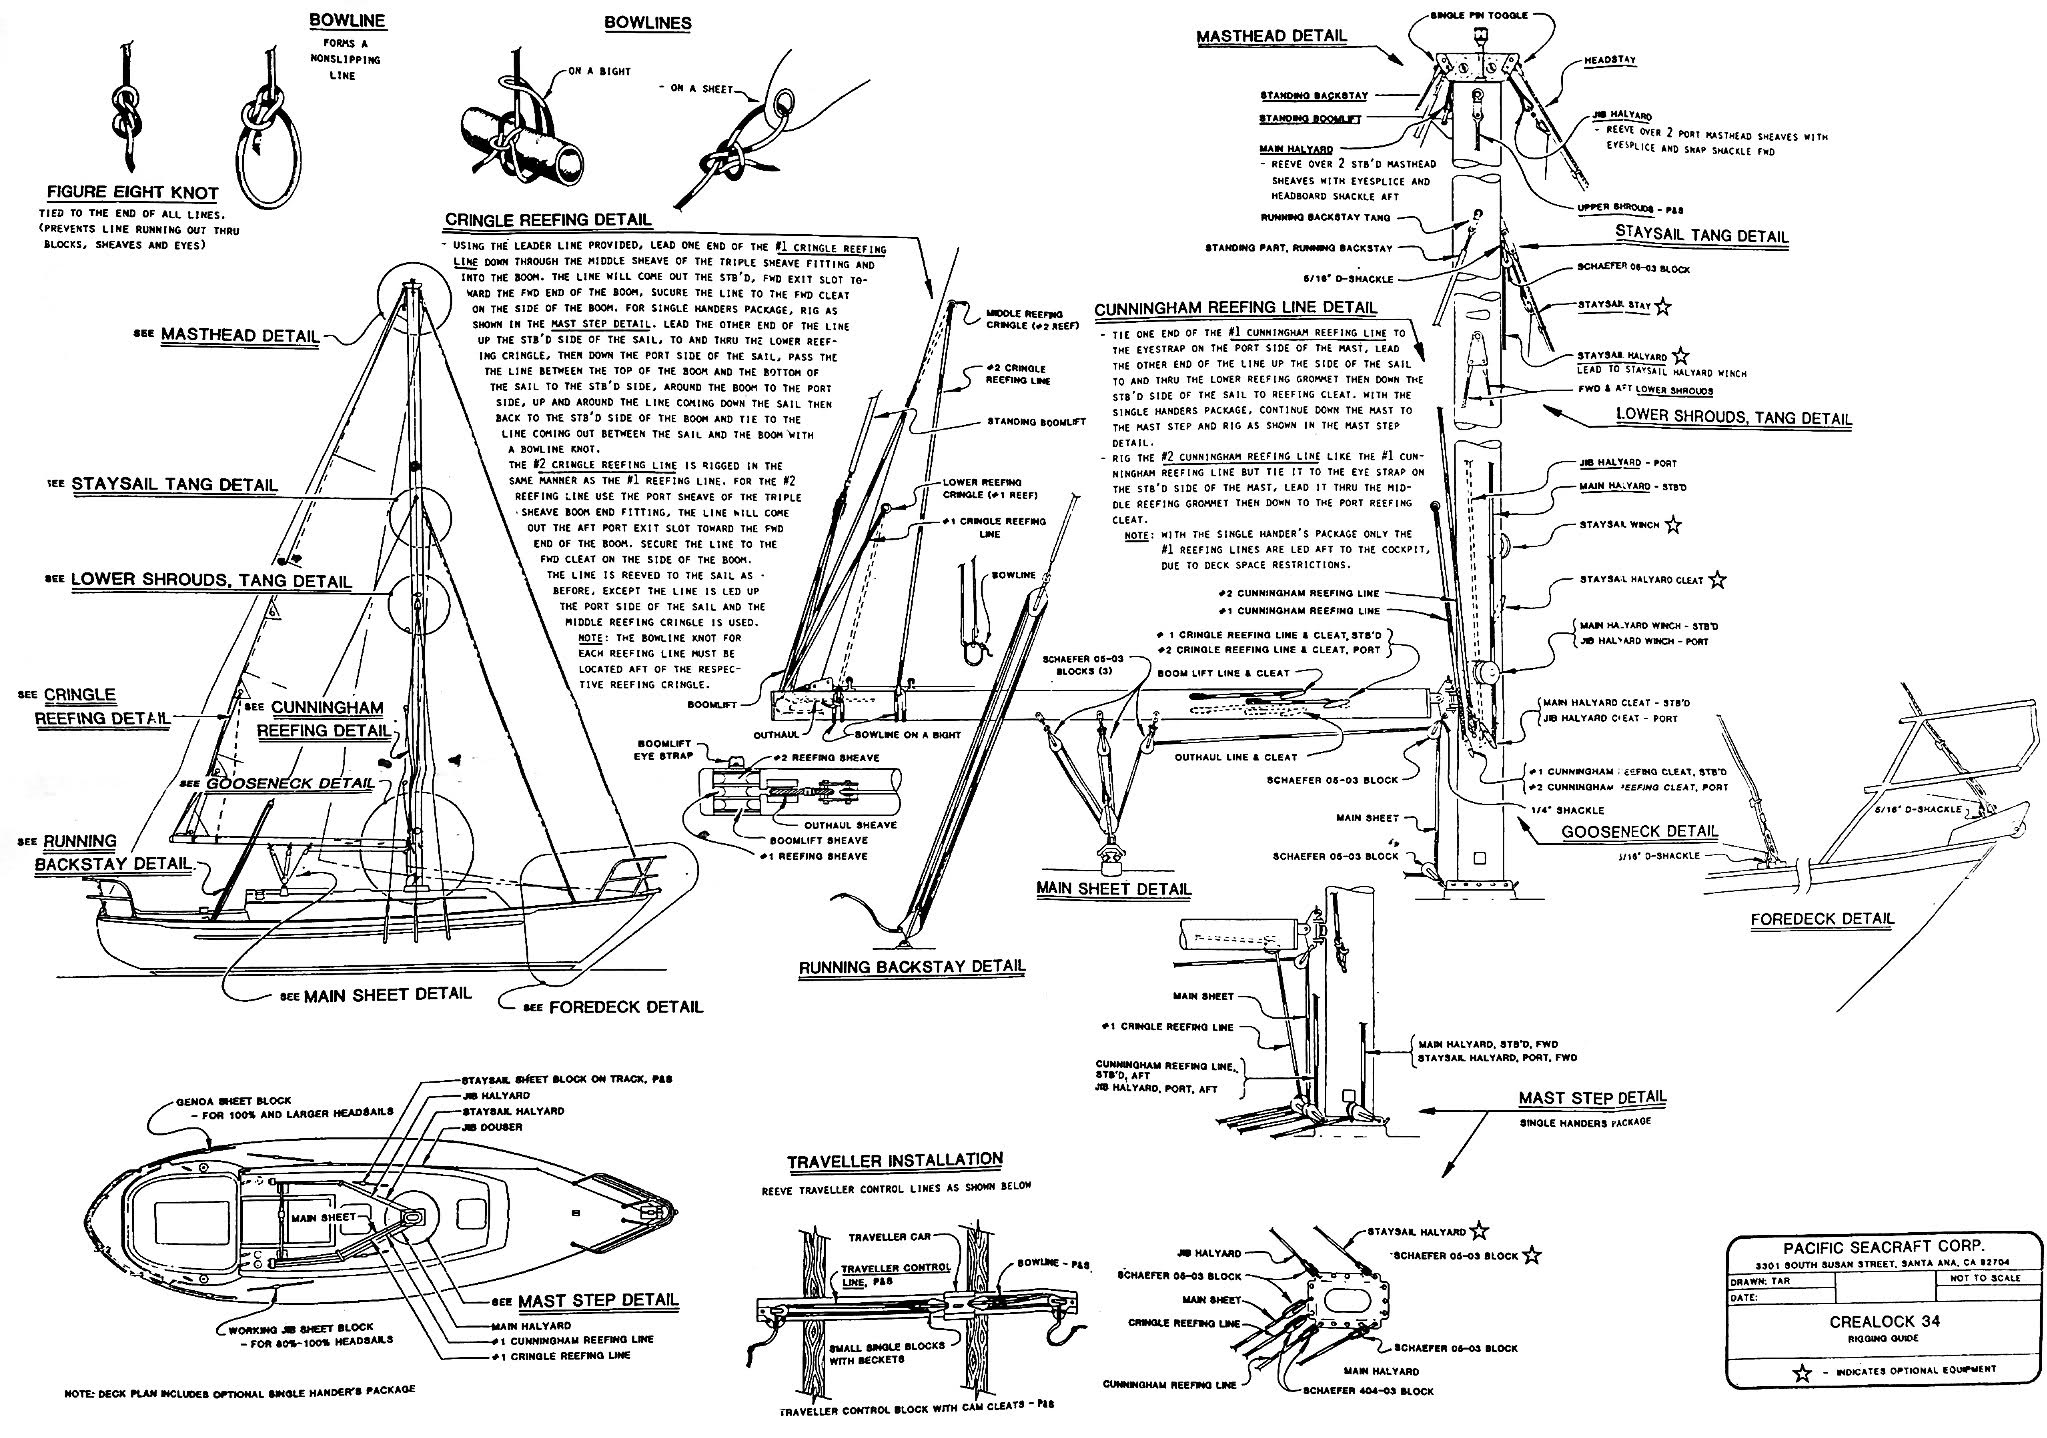 Pacific Seacraft 34 Sailboat Design And Sailing Characteristics Mast Wiring Diagram Rigging